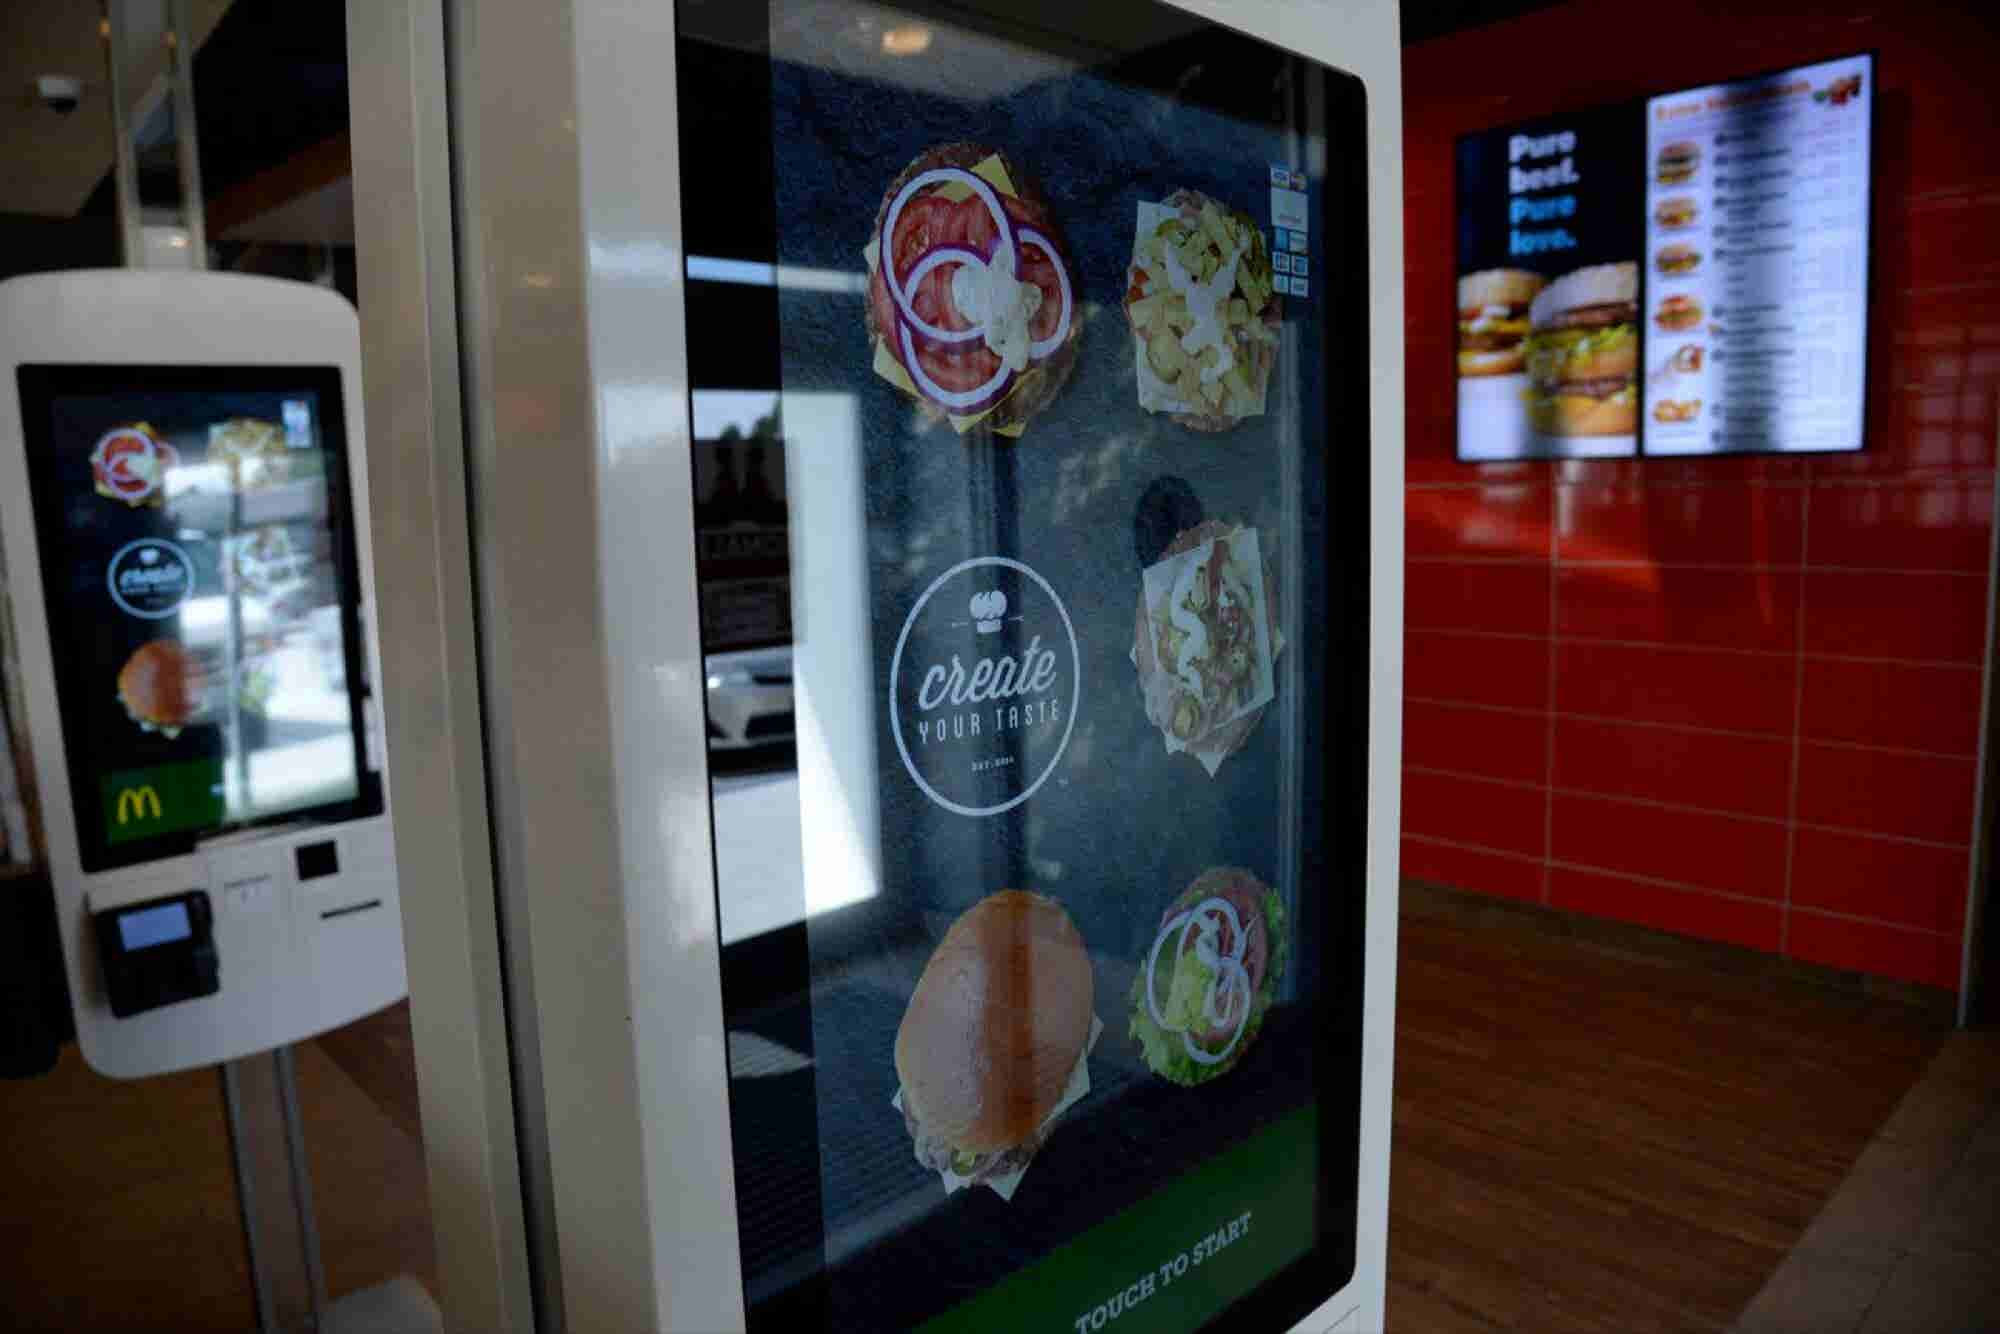 McDonald's Is Adding Self-Order Kiosks to 1,000 Stores